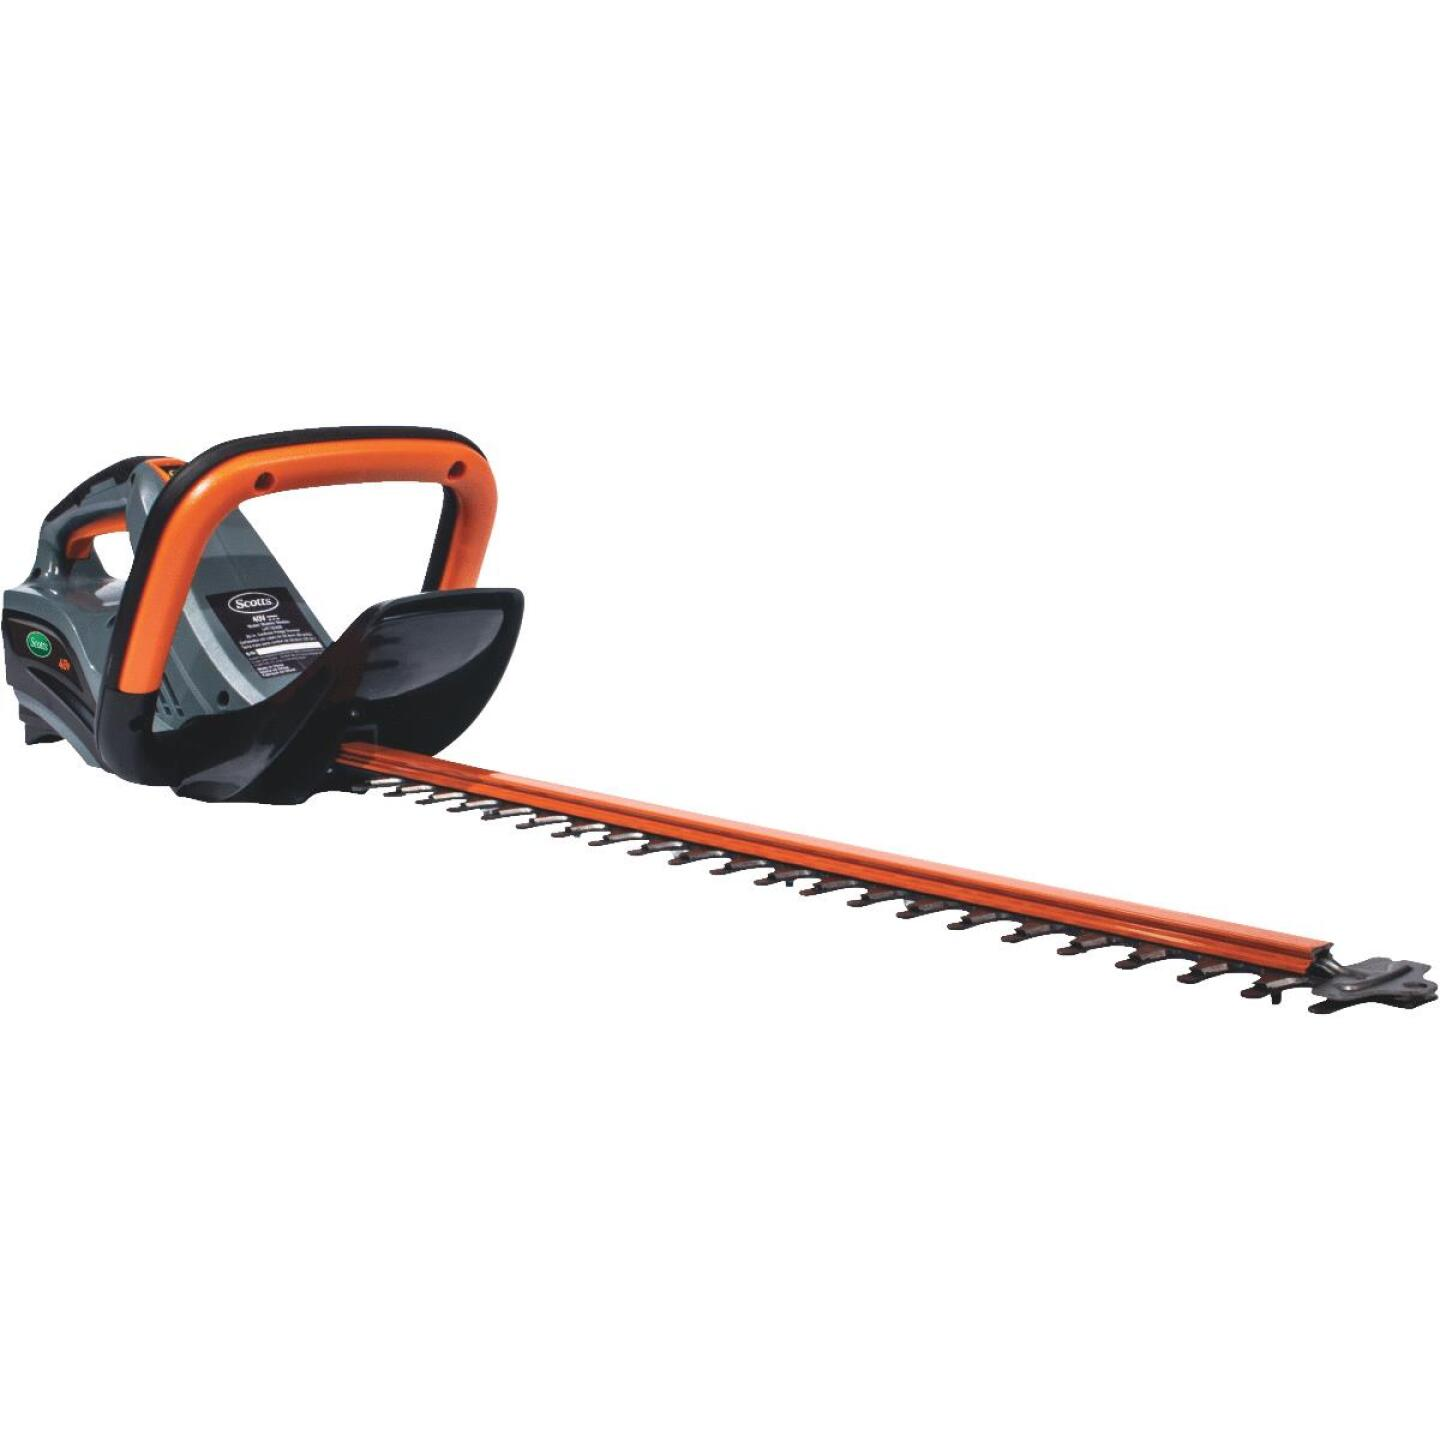 Scotts 24 In. 40V Lithium Ion Cordless Hedge Trimmer Image 1